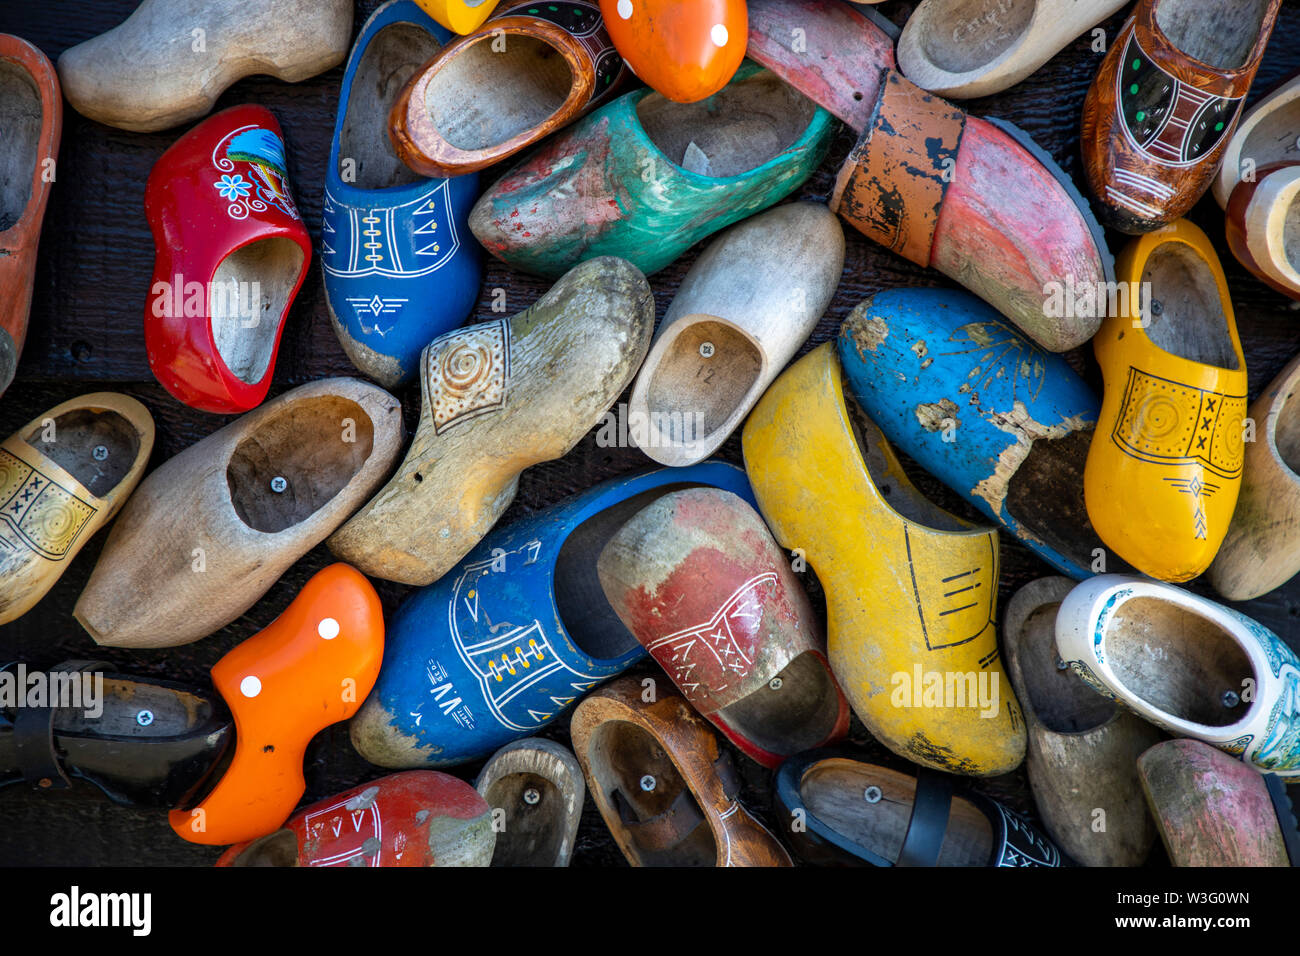 Zaanse Schans, Netherlands, historical village, open-air museum in North Holland, old windmills, workshops, farms, houses, typical Dutch wooden shoes, - Stock Image